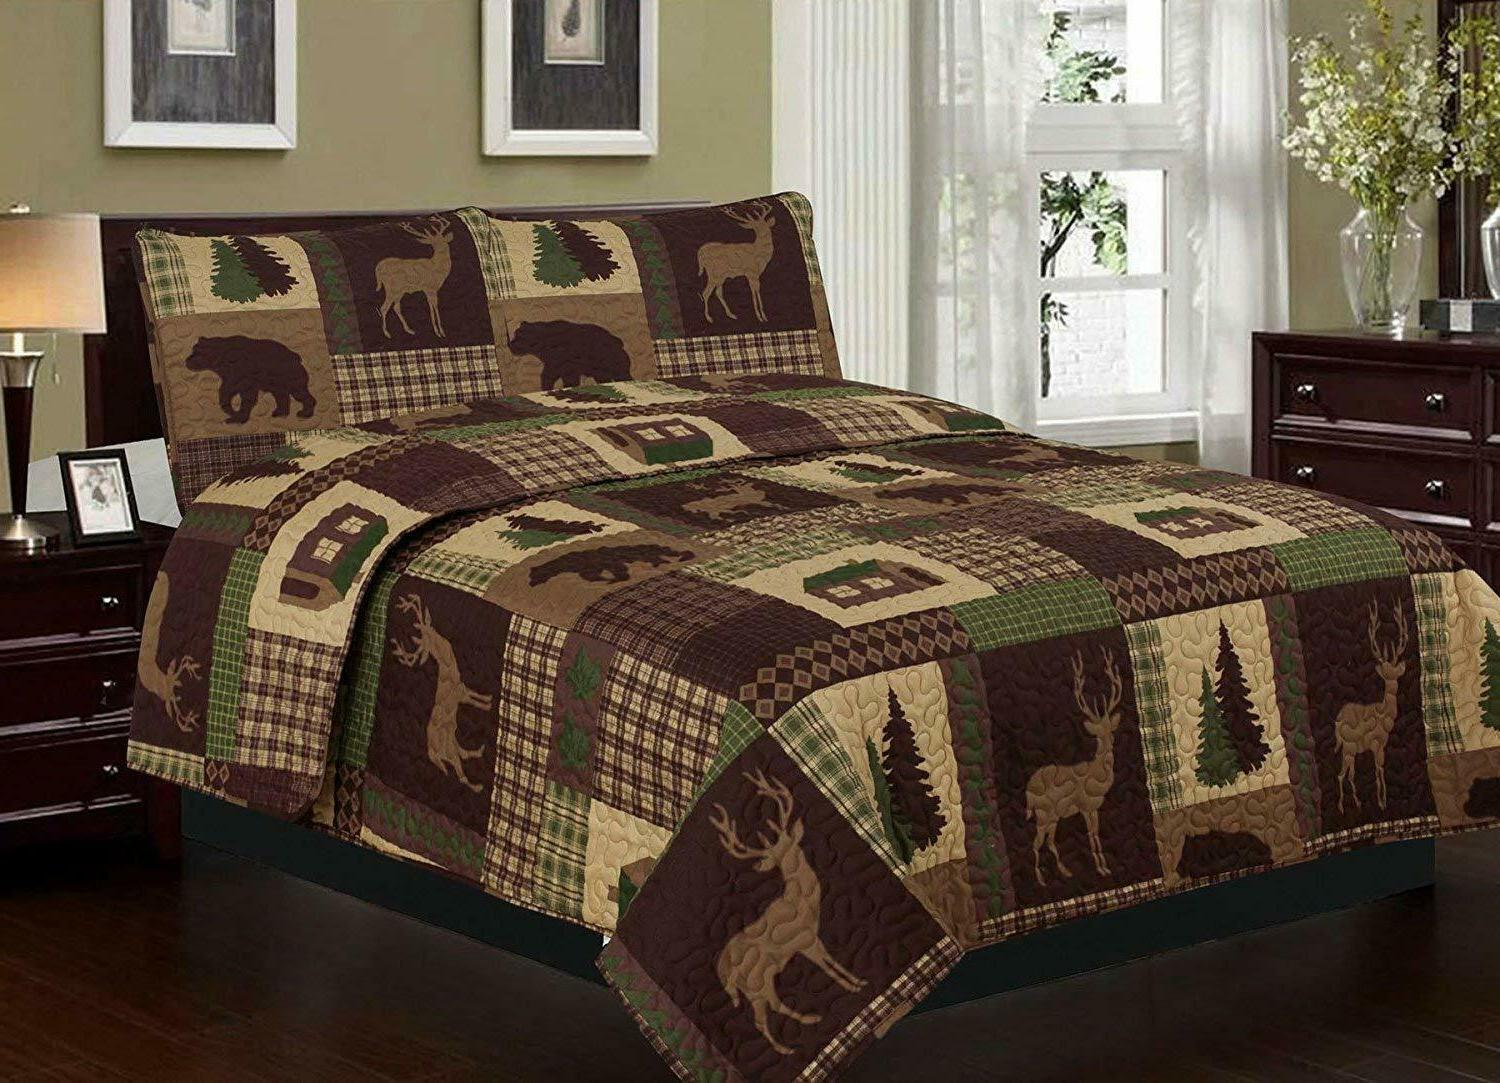 King, Queen, Quilt Rustic Cabin Lodge Deer Bedspread